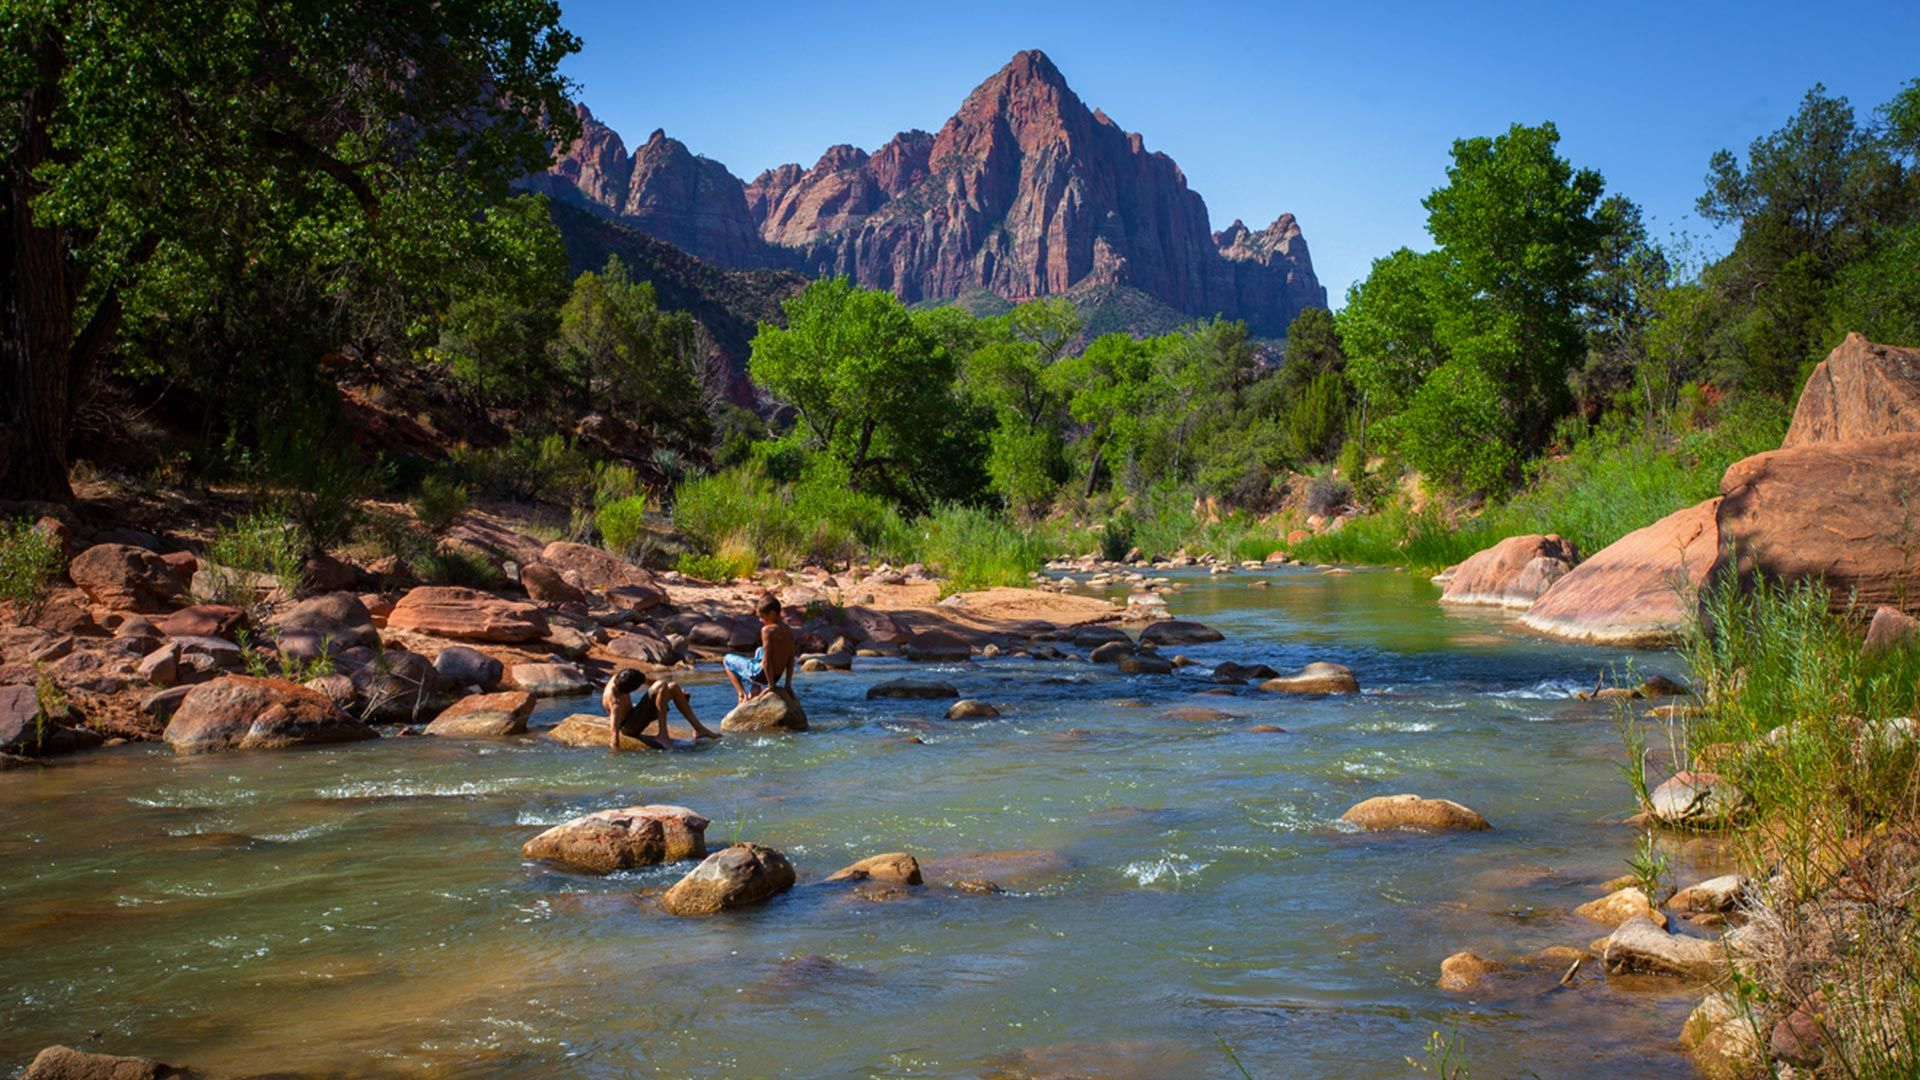 The Diversified Flora And Fauna Of Zion National Park Includes 289 Species Of Zion National Park Lodging Zion National Park Hotels Mt Zion National Park